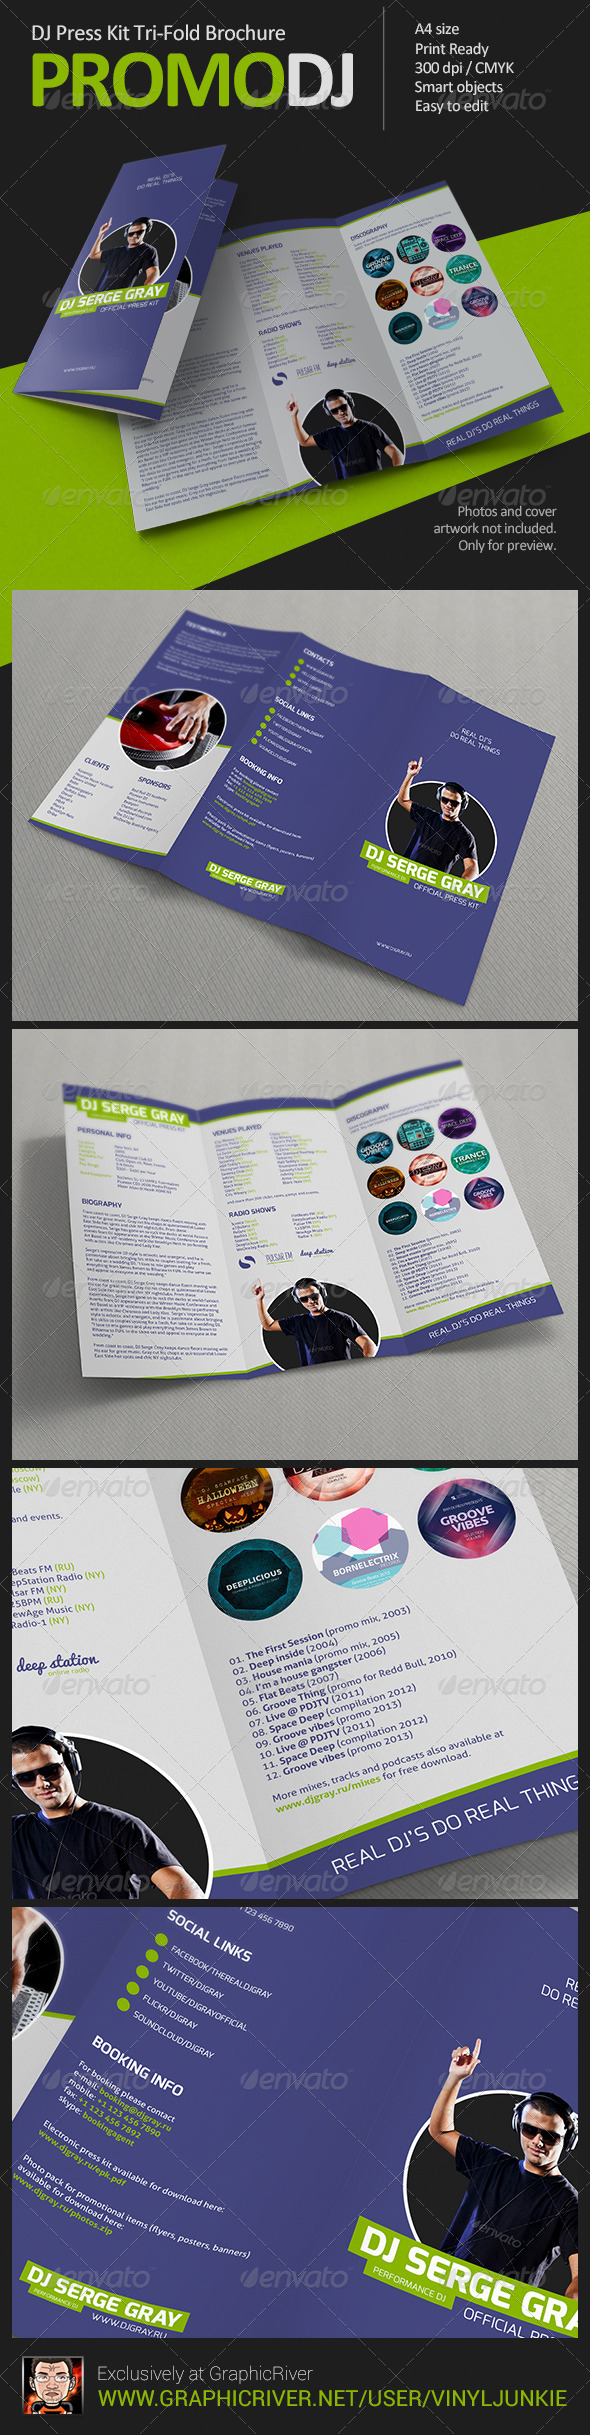 Promodj dj press kit tri fold brochure graphicriver for Dj press kit template free